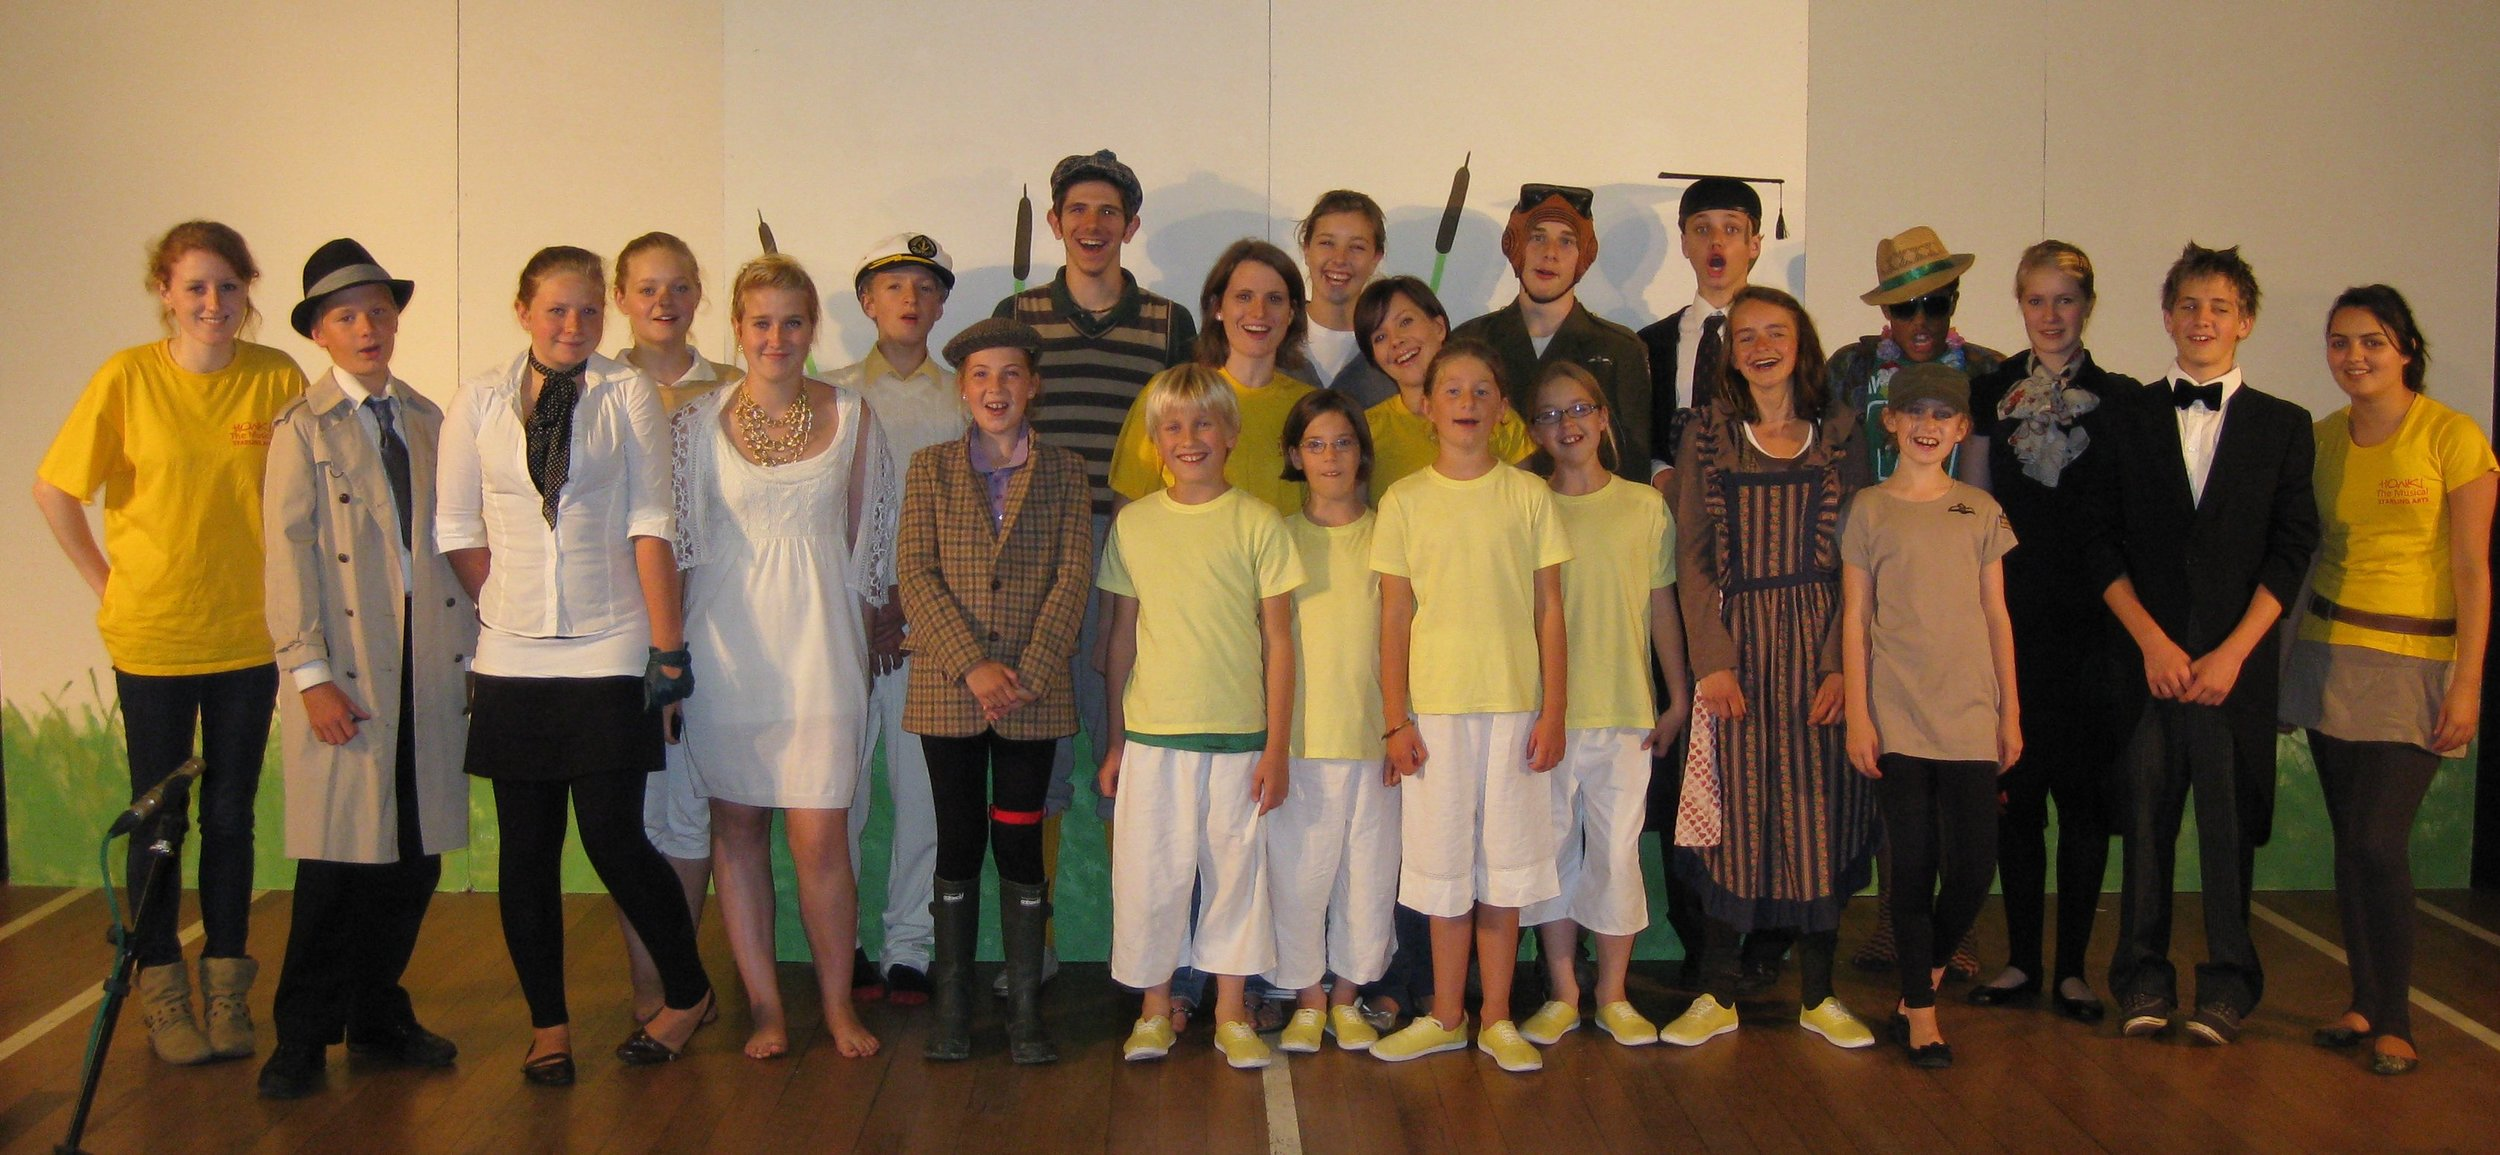 The cast & crew of Honk! in 2010